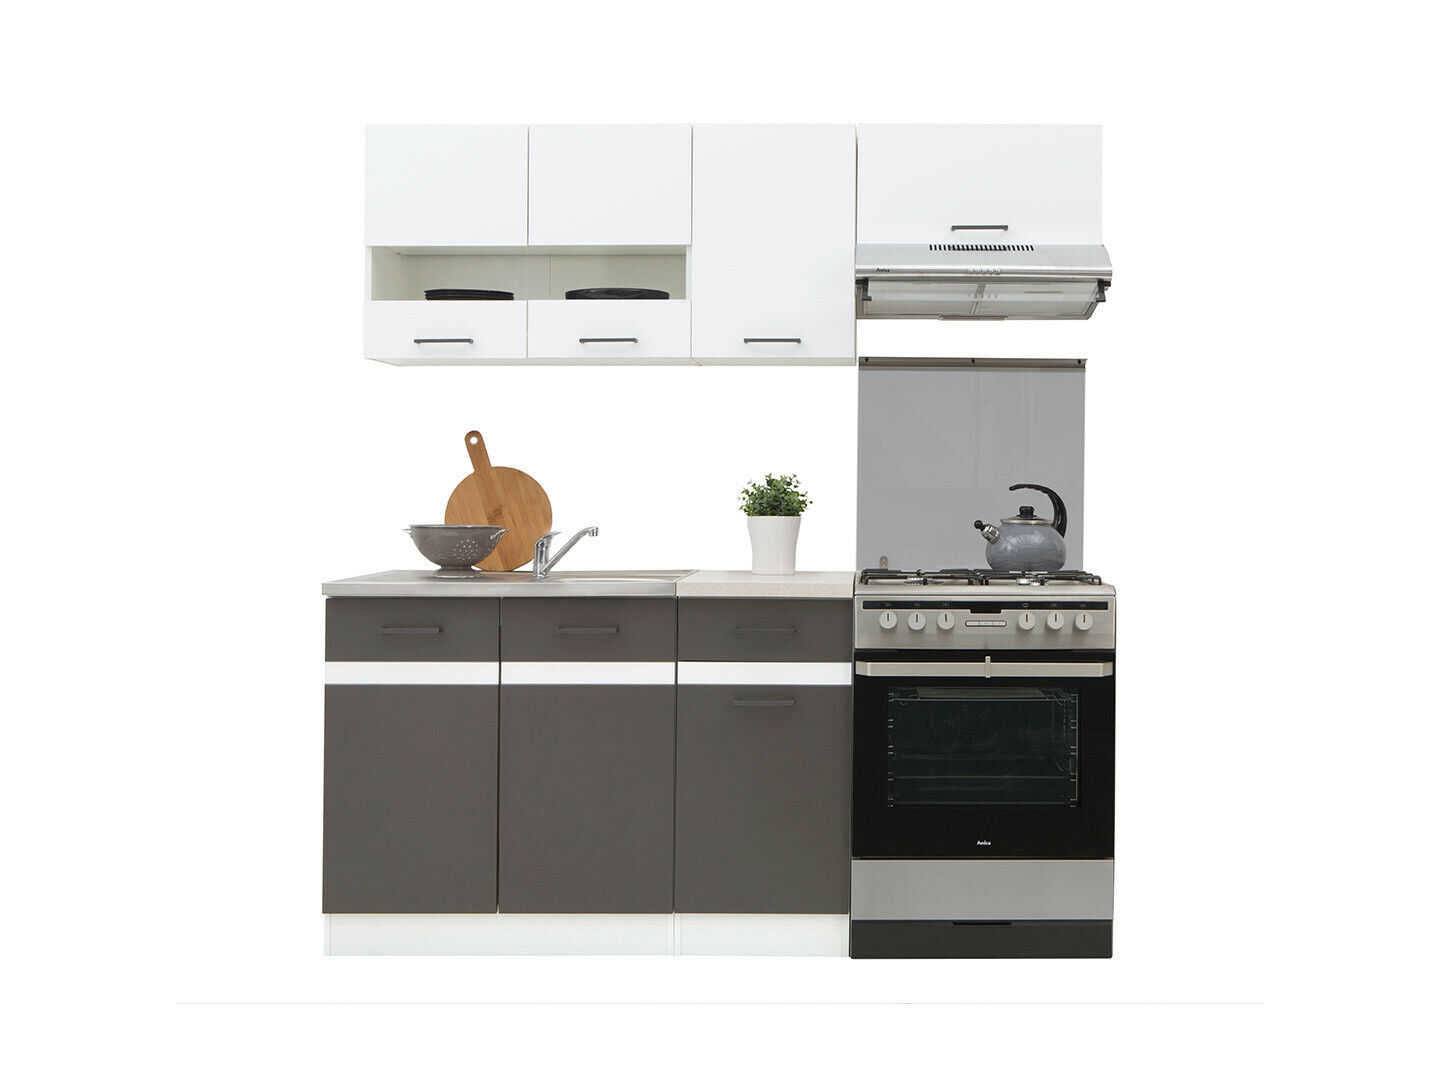 5 kitchen units set, white high gloss and grey matt kitchen units Junona  180cm